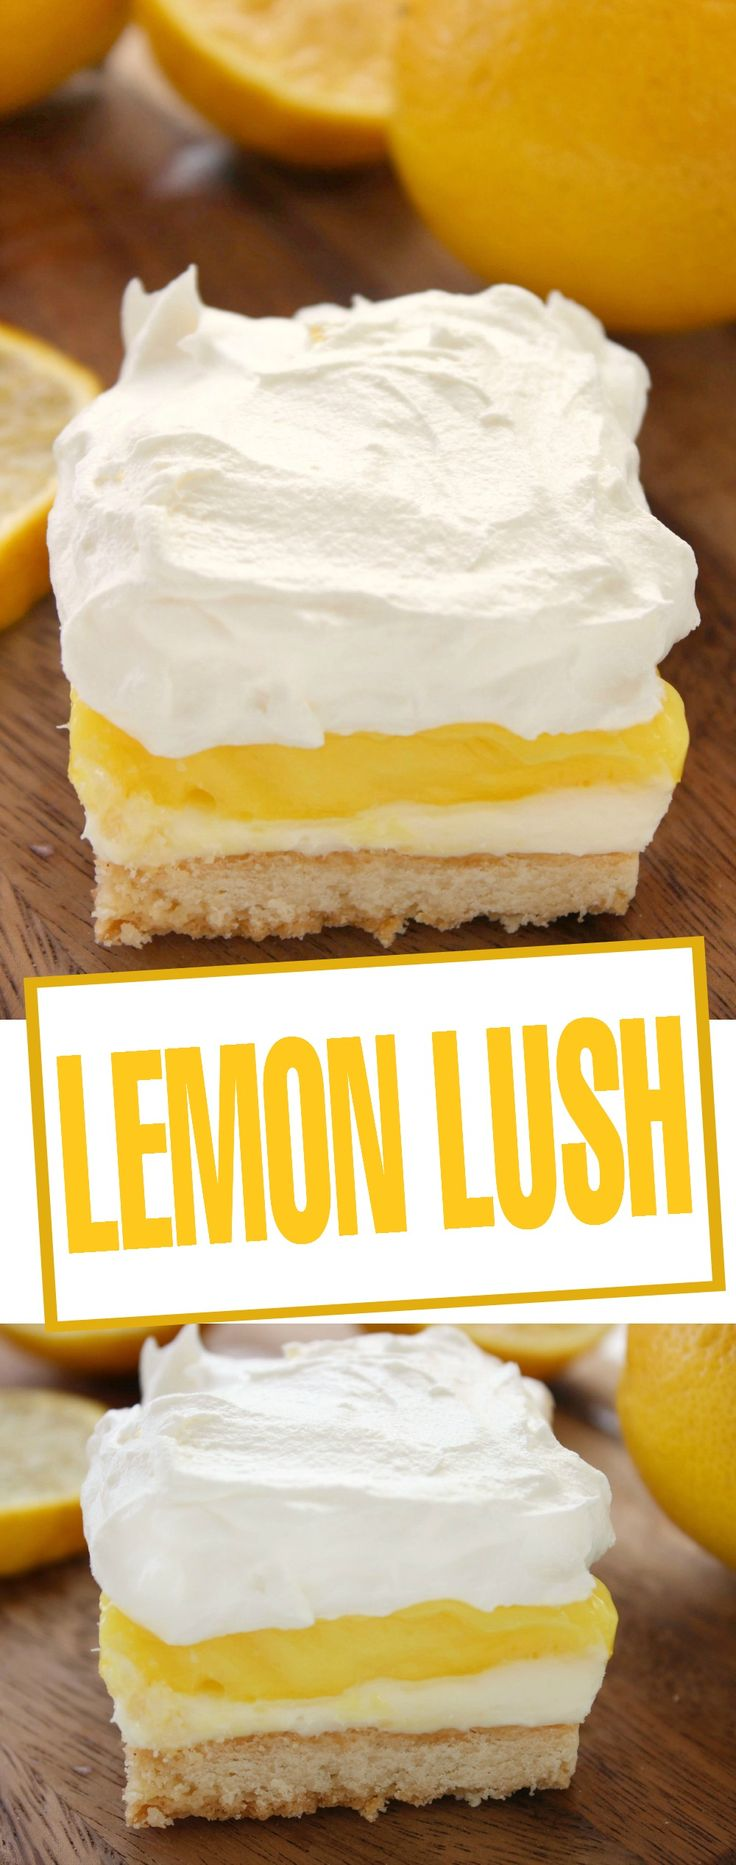 This Lemon Lush dessert recipe is extremely delicious and perfect for serving guests any time of year!